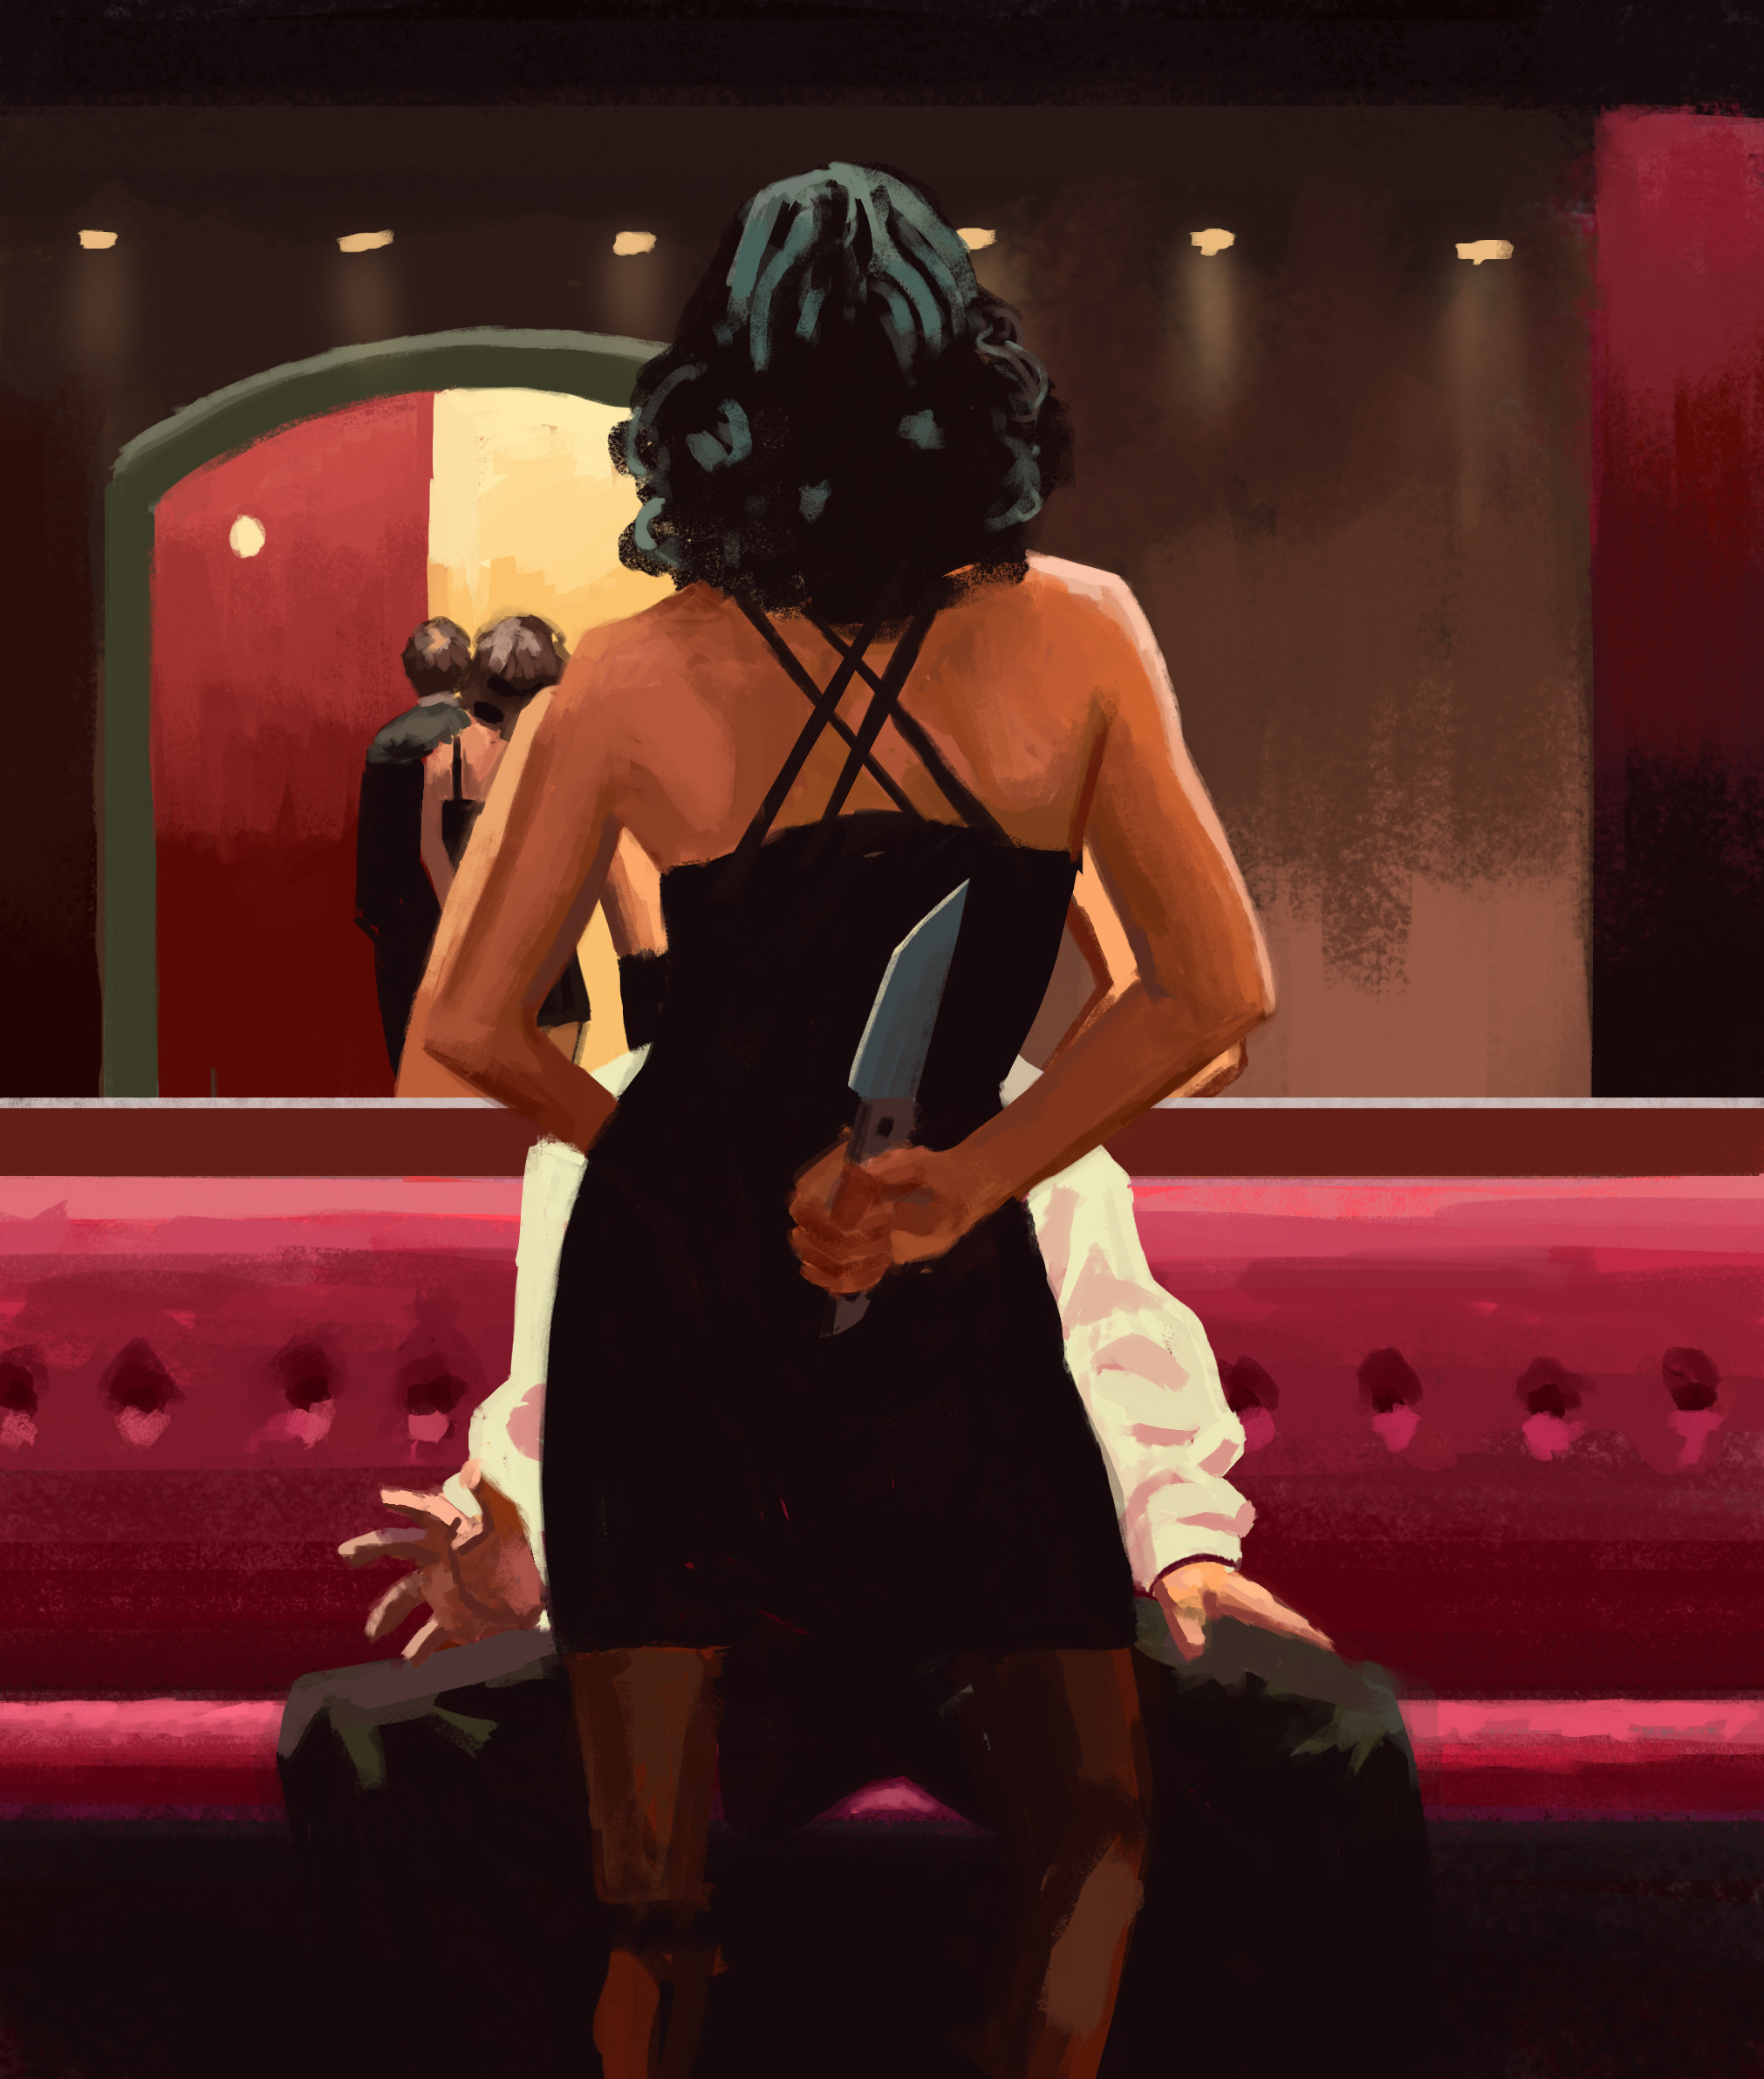 After Jack Vettriano